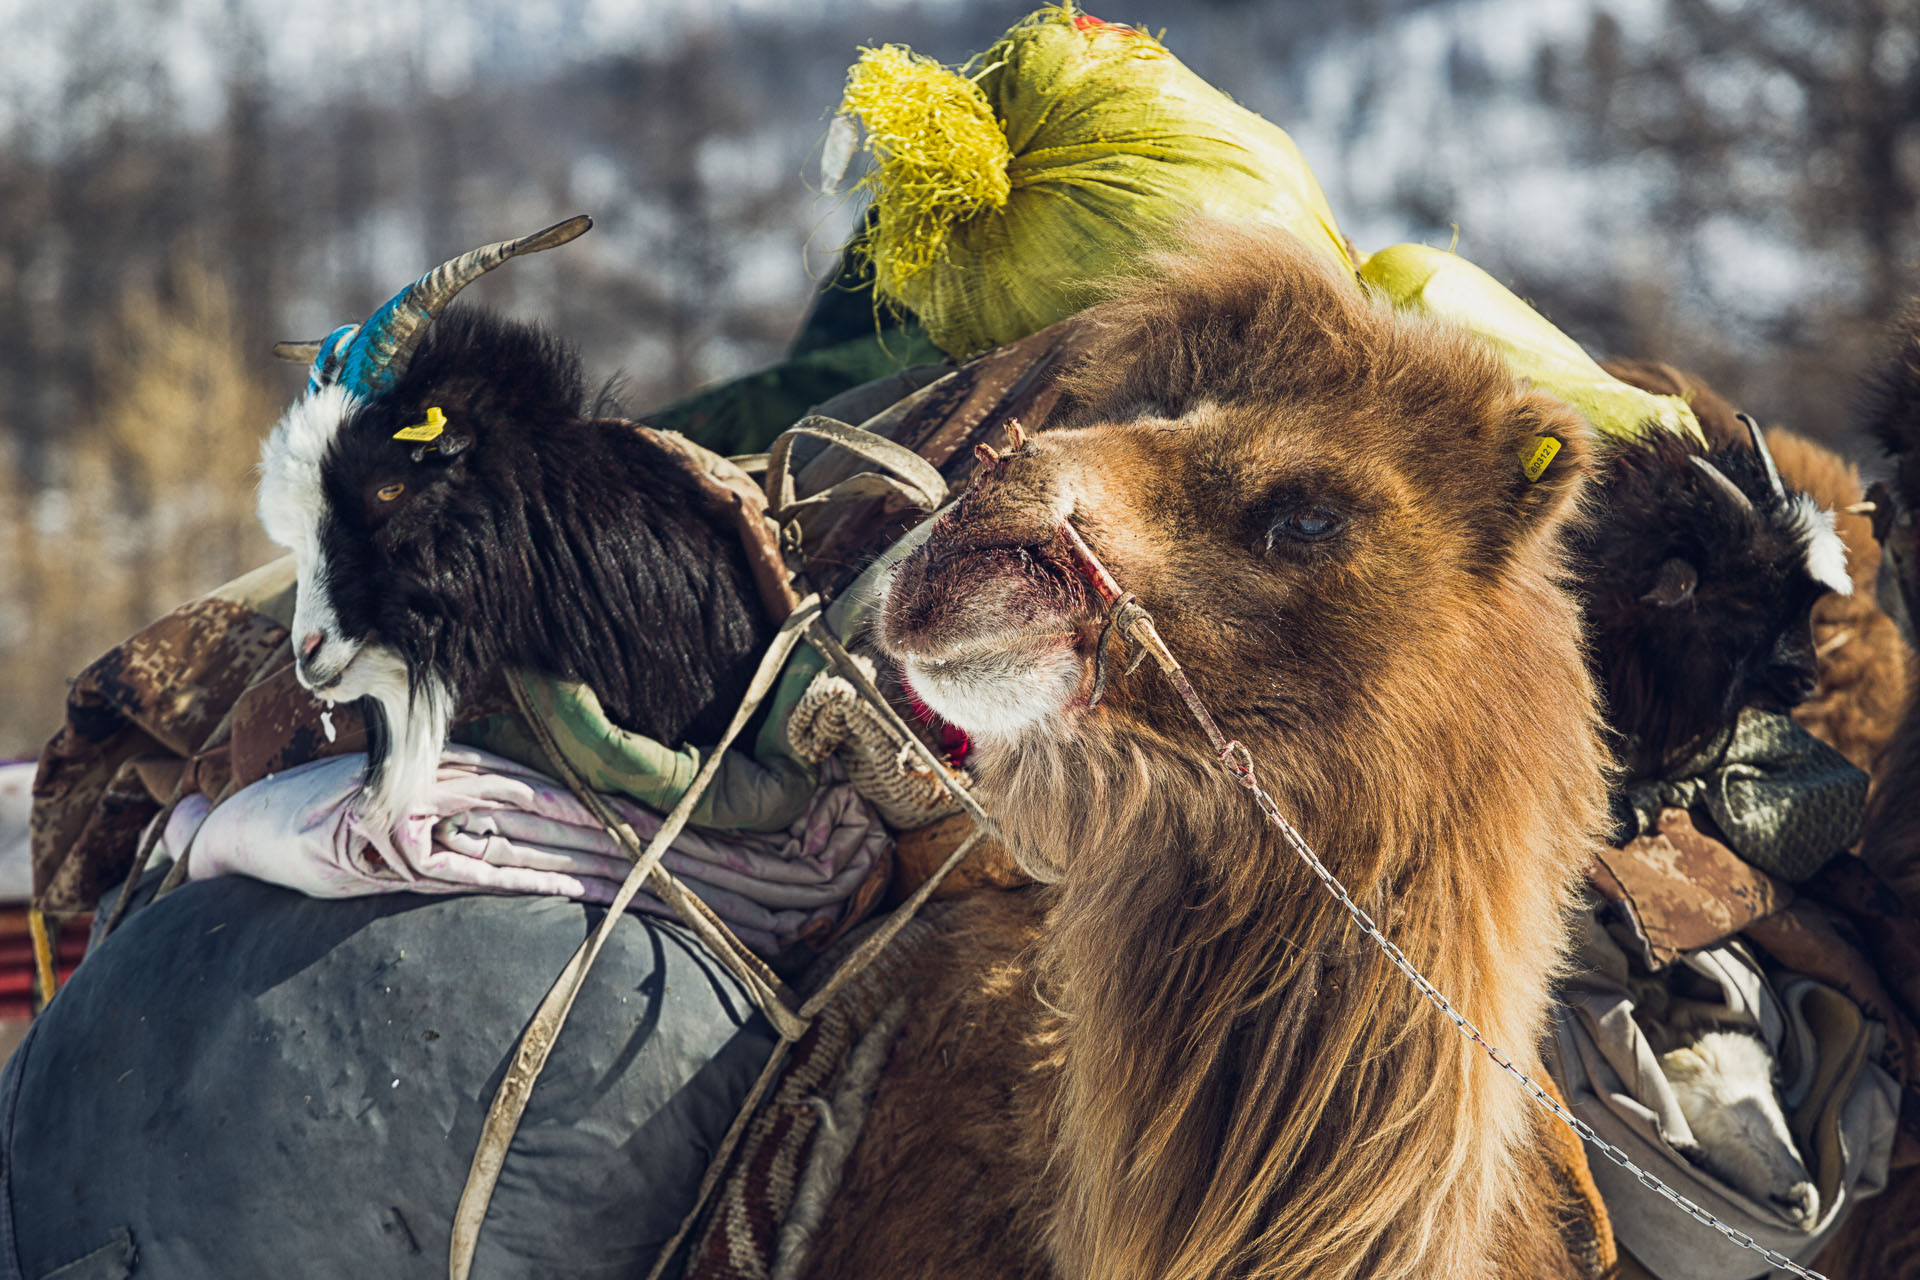 A Bactrian camel carries goats on a mutli-day migration to the Darhad valley. It carries cashmere goats along with blankets and other belonging. The camels are enchained from one's load to the next's septum. This one appears to have suffered an injury from the enchainment.